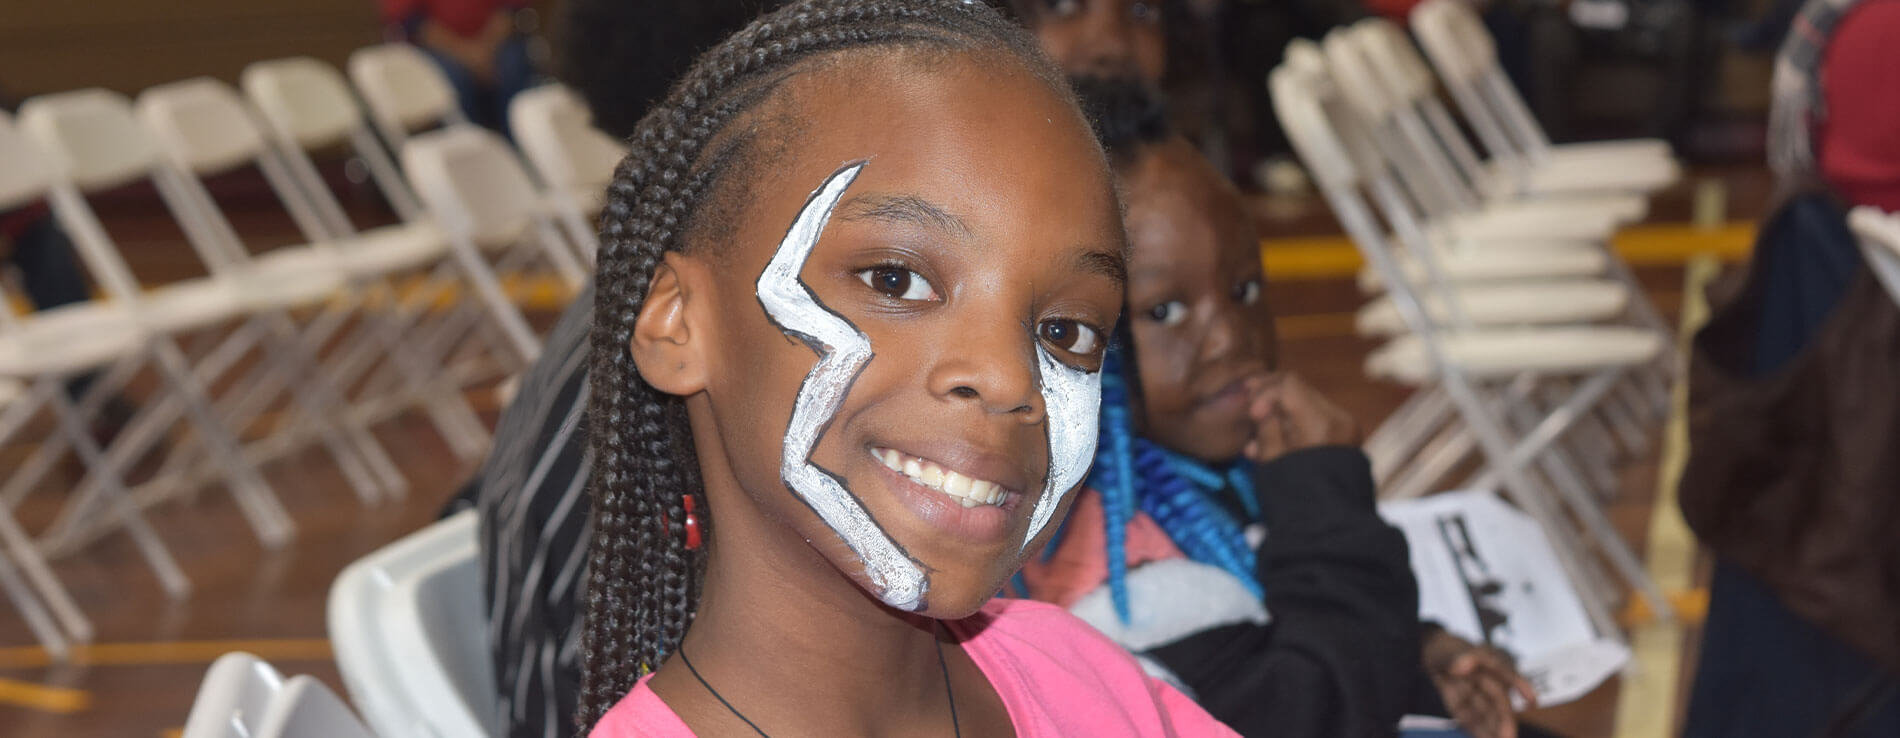 A child smiling while showing off her face paint.